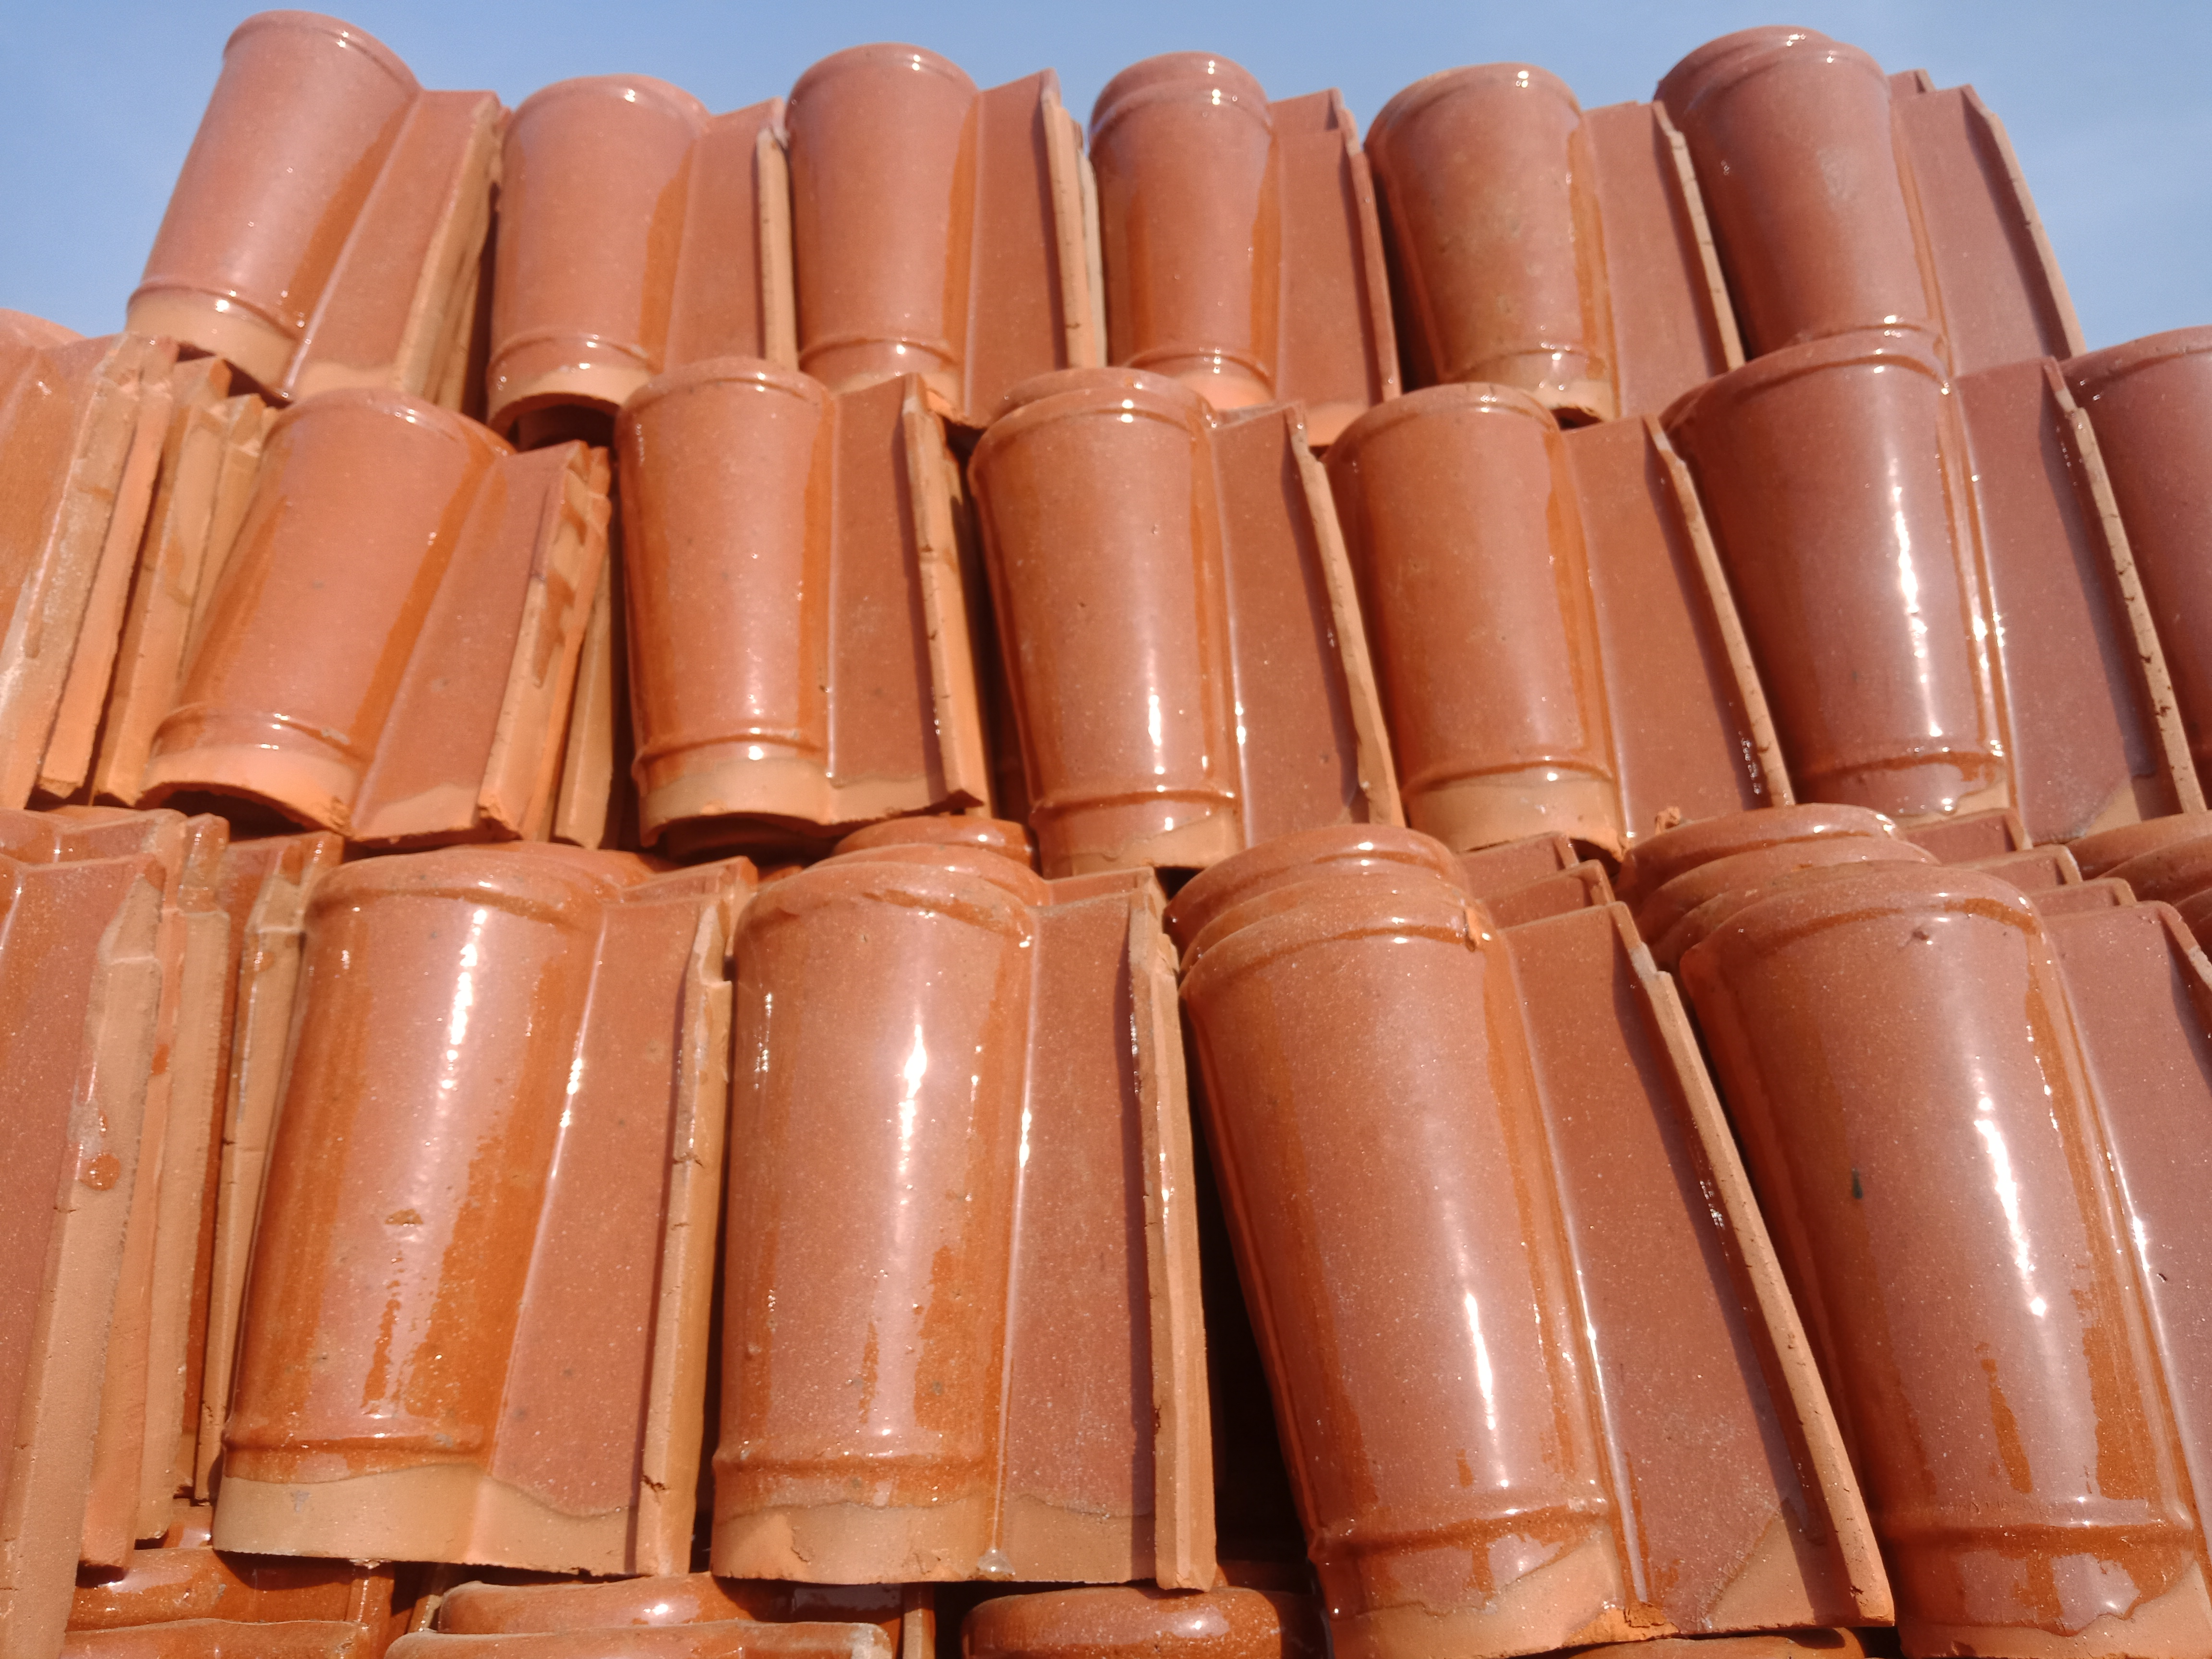 3 Glazed Terracotta Roofing Tiles Roof Shingles Tiles Rates in Pakistan Images.